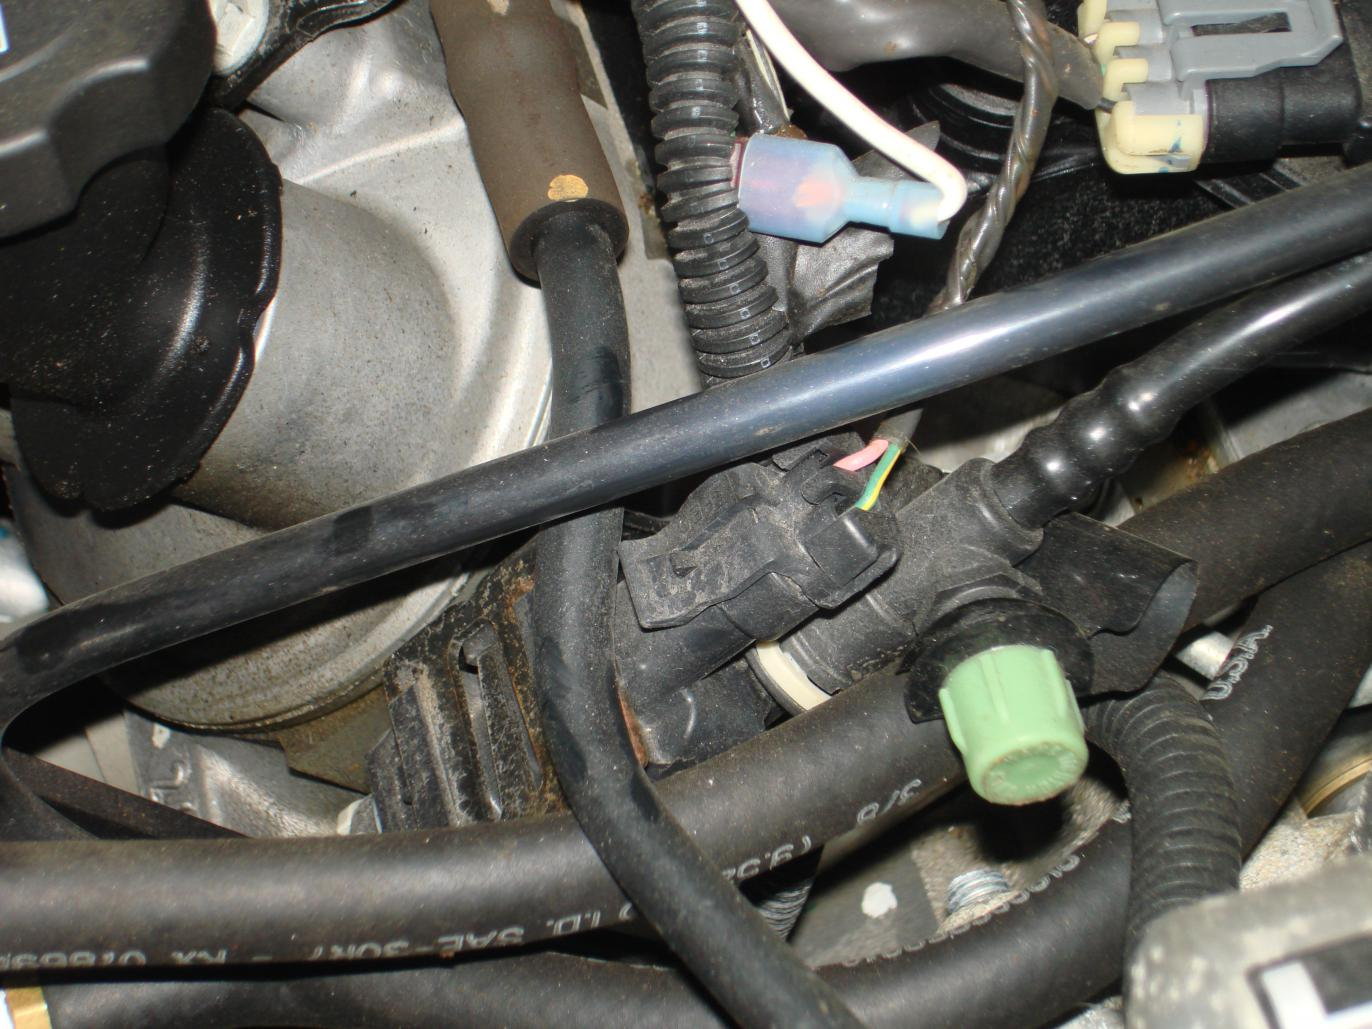 2000 Dodge Caravan Front Window Motor Replacement in addition Cadillac Cts Vacuum Lines additionally Cabin Air Filter Location 2002 Ford Truck as well 1996 Saturn Sl2 Starter Location On in addition 2006 Scion Xb Fuse Diagram Location. on suzuki forenza blower motor resistor replacement